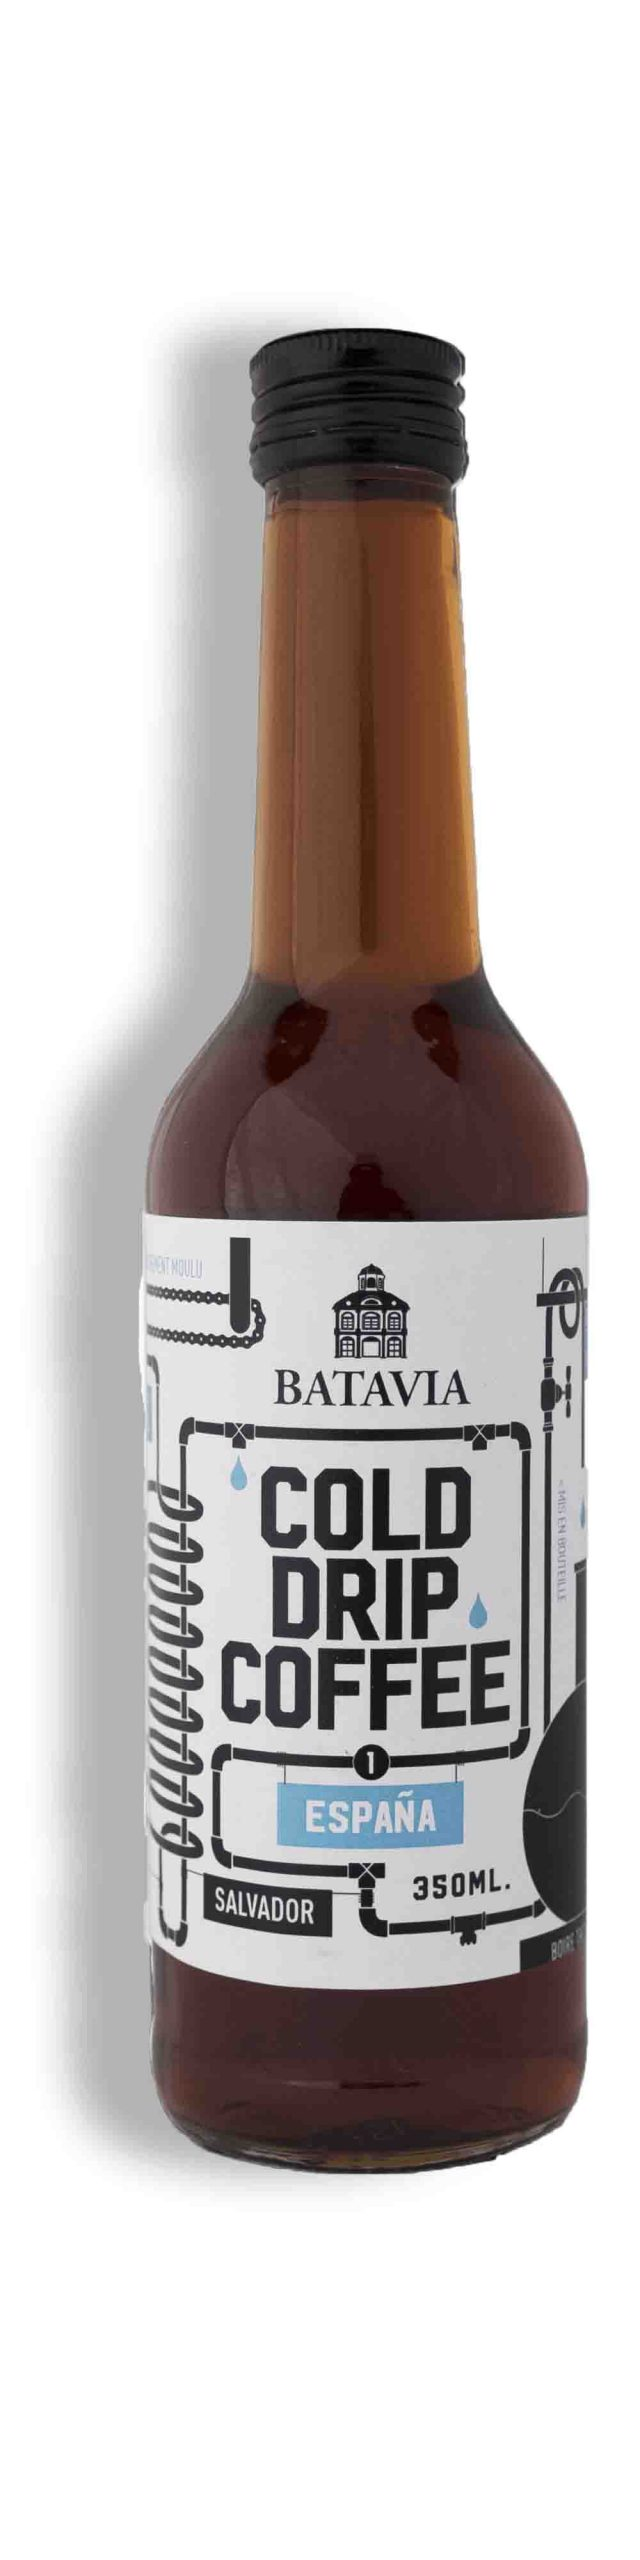 batavia cold drip coffee espana